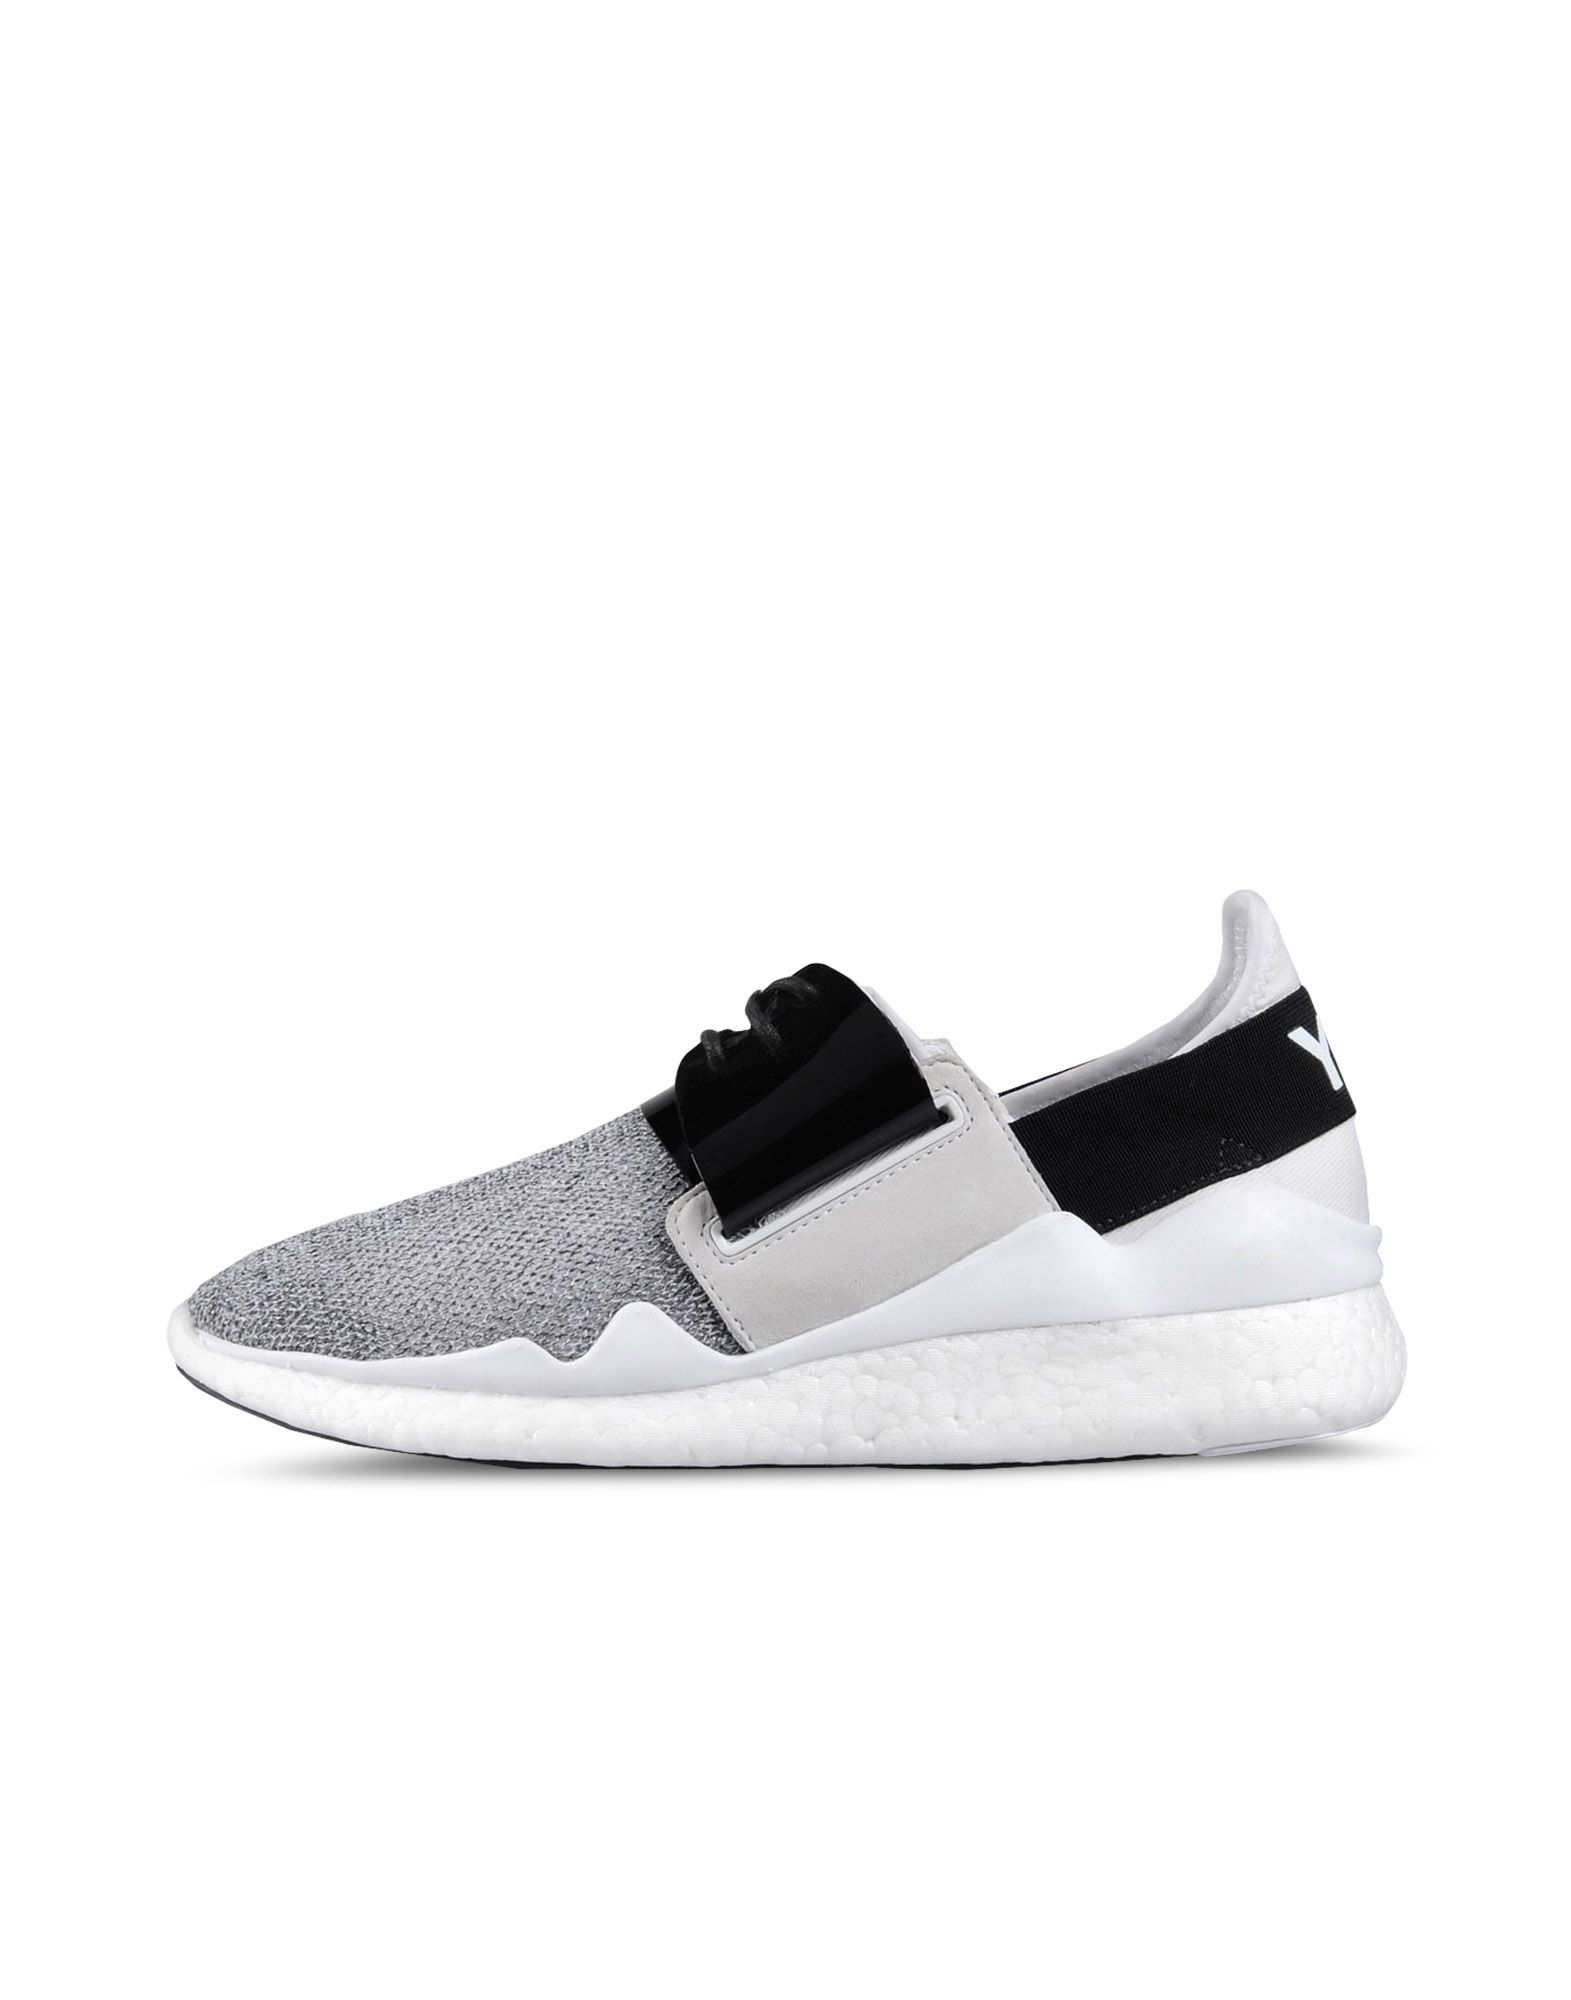 5851a8680f1bb Y-3 CHIMU BOOST - Sneakers